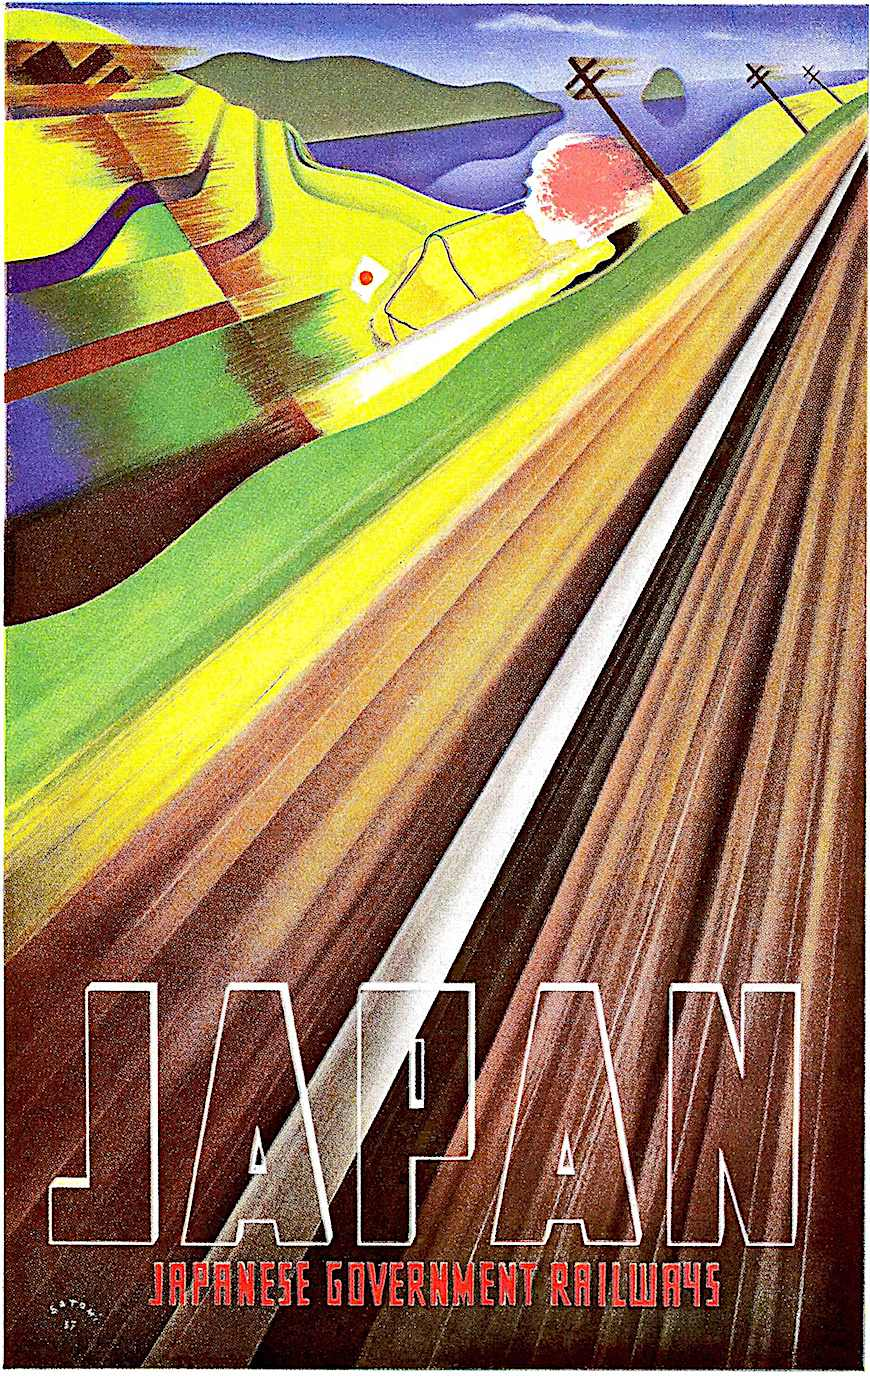 a 1937 travel poster by Satomi for Japanese Government Railways, motion and speed